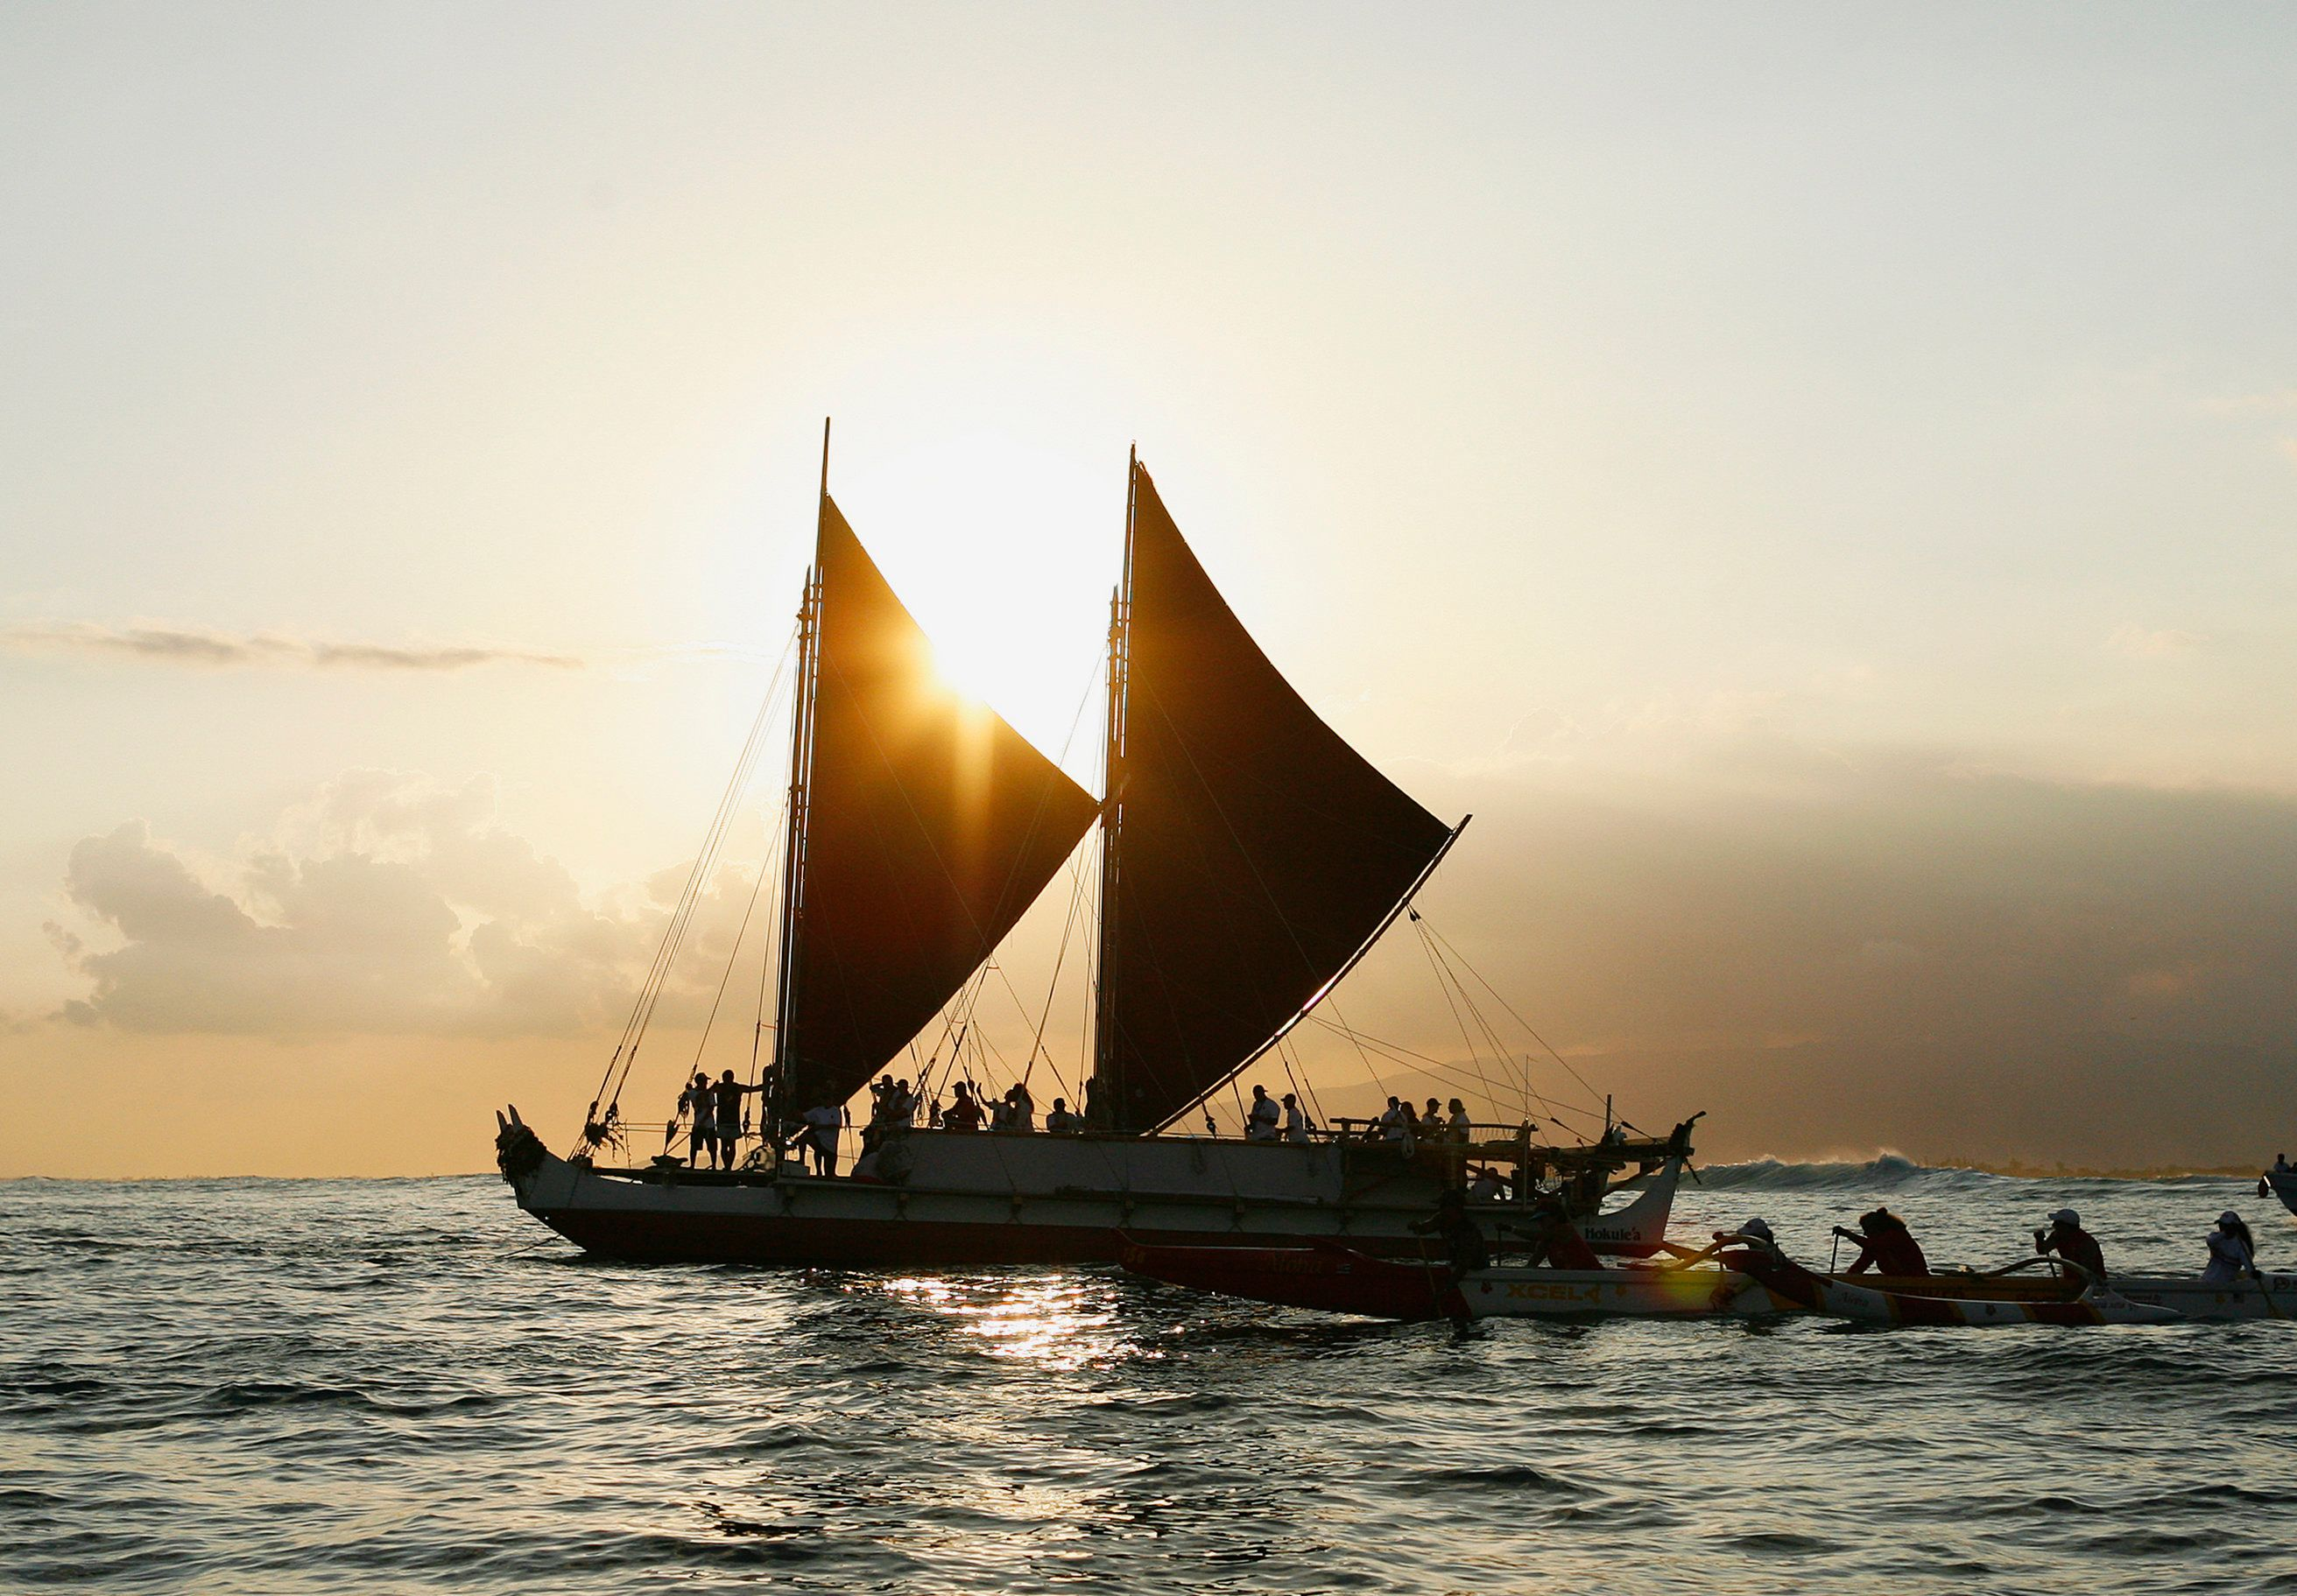 The Hokule'a, a traditional Hawaiian voyaging canoe that navigates primarily by using the stars, departs for a 4-year worldwide voyage from Honolulu, Hawaii May 17, 2014.   REUTERS/Hugh Gentry (UNITED STATES - Tags: SOCIETY MARITIME)